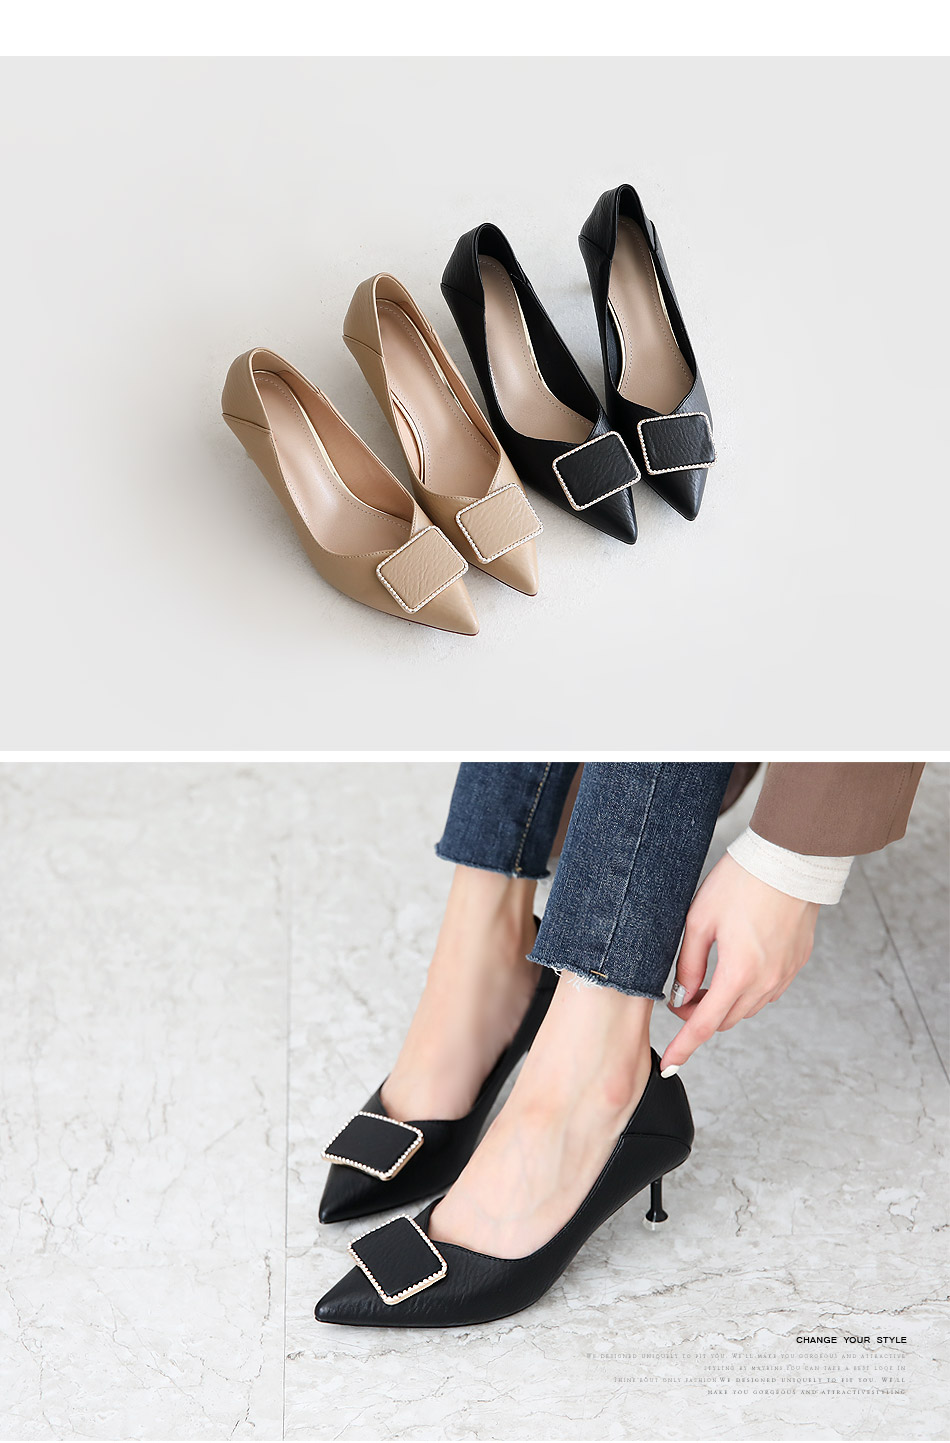 Tipence Middle Hill Pumps 6cm